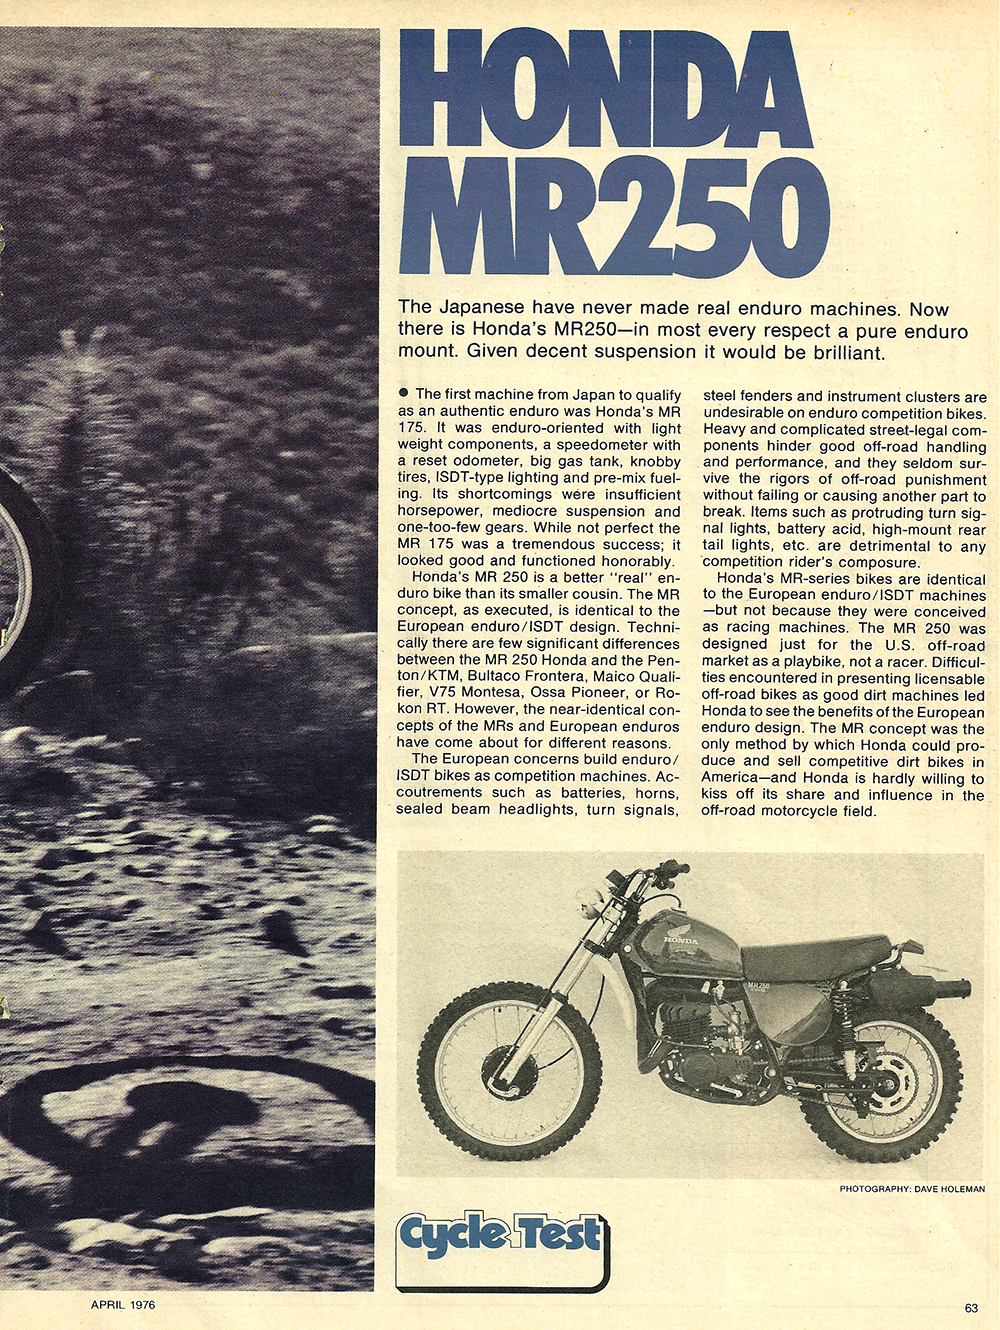 1976 Honda MR250 enduro road test 2.jpg